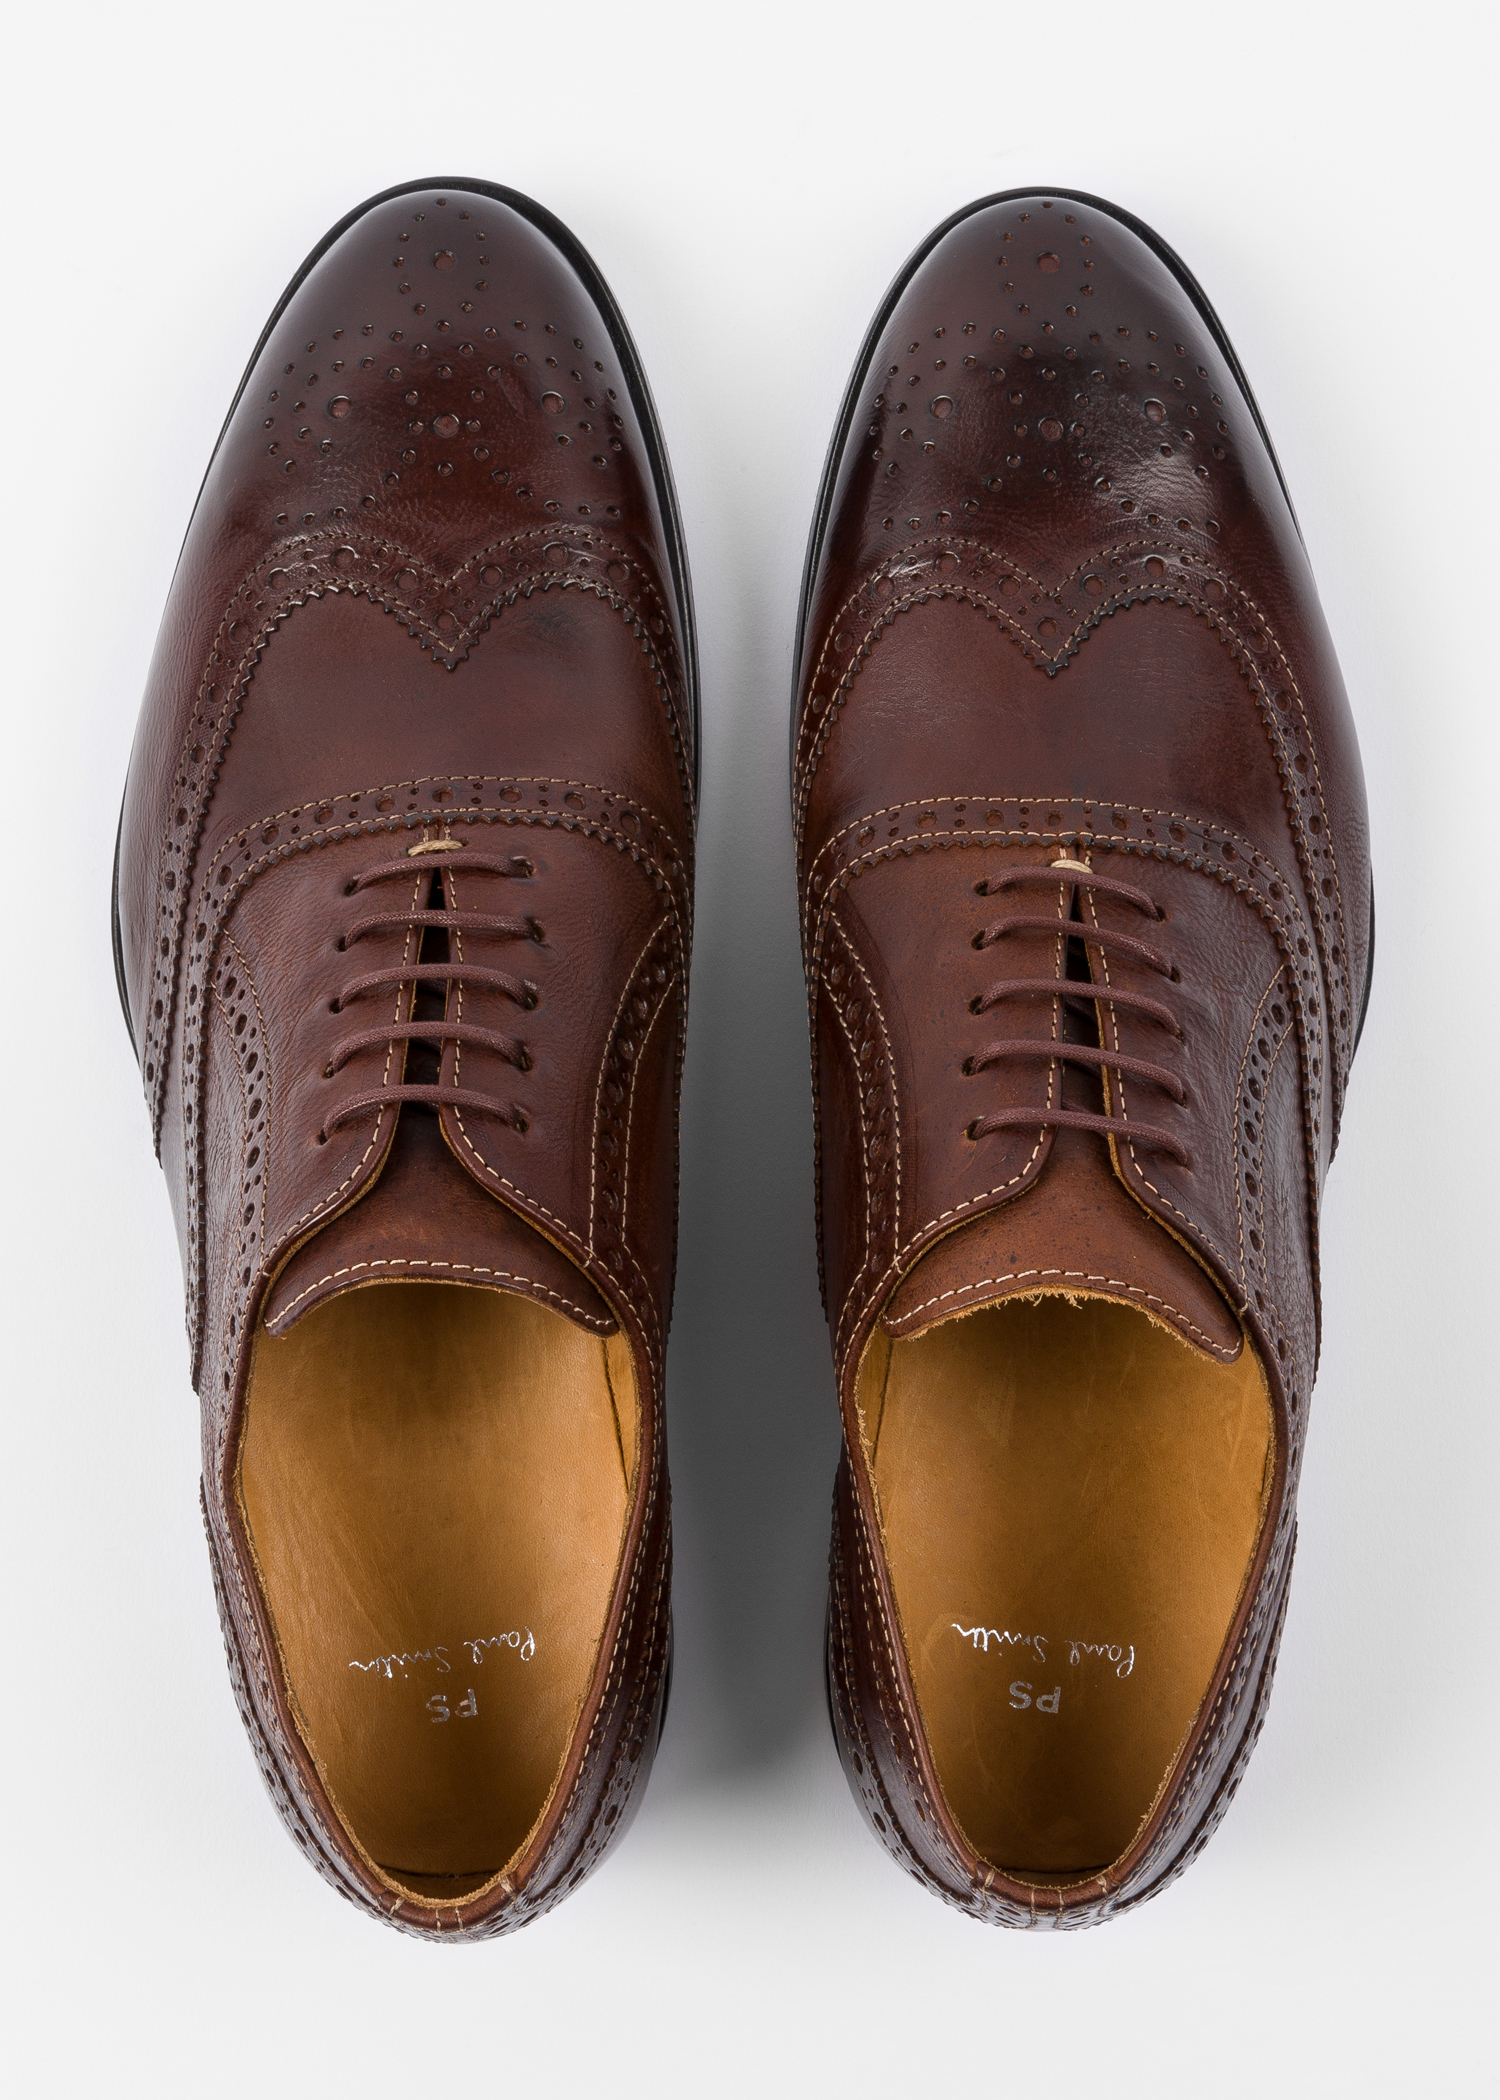 9e628e04d1b53 Top Down View - Men's Chocolate Brown Calf Leather 'Marti' Brogues Paul  Smith